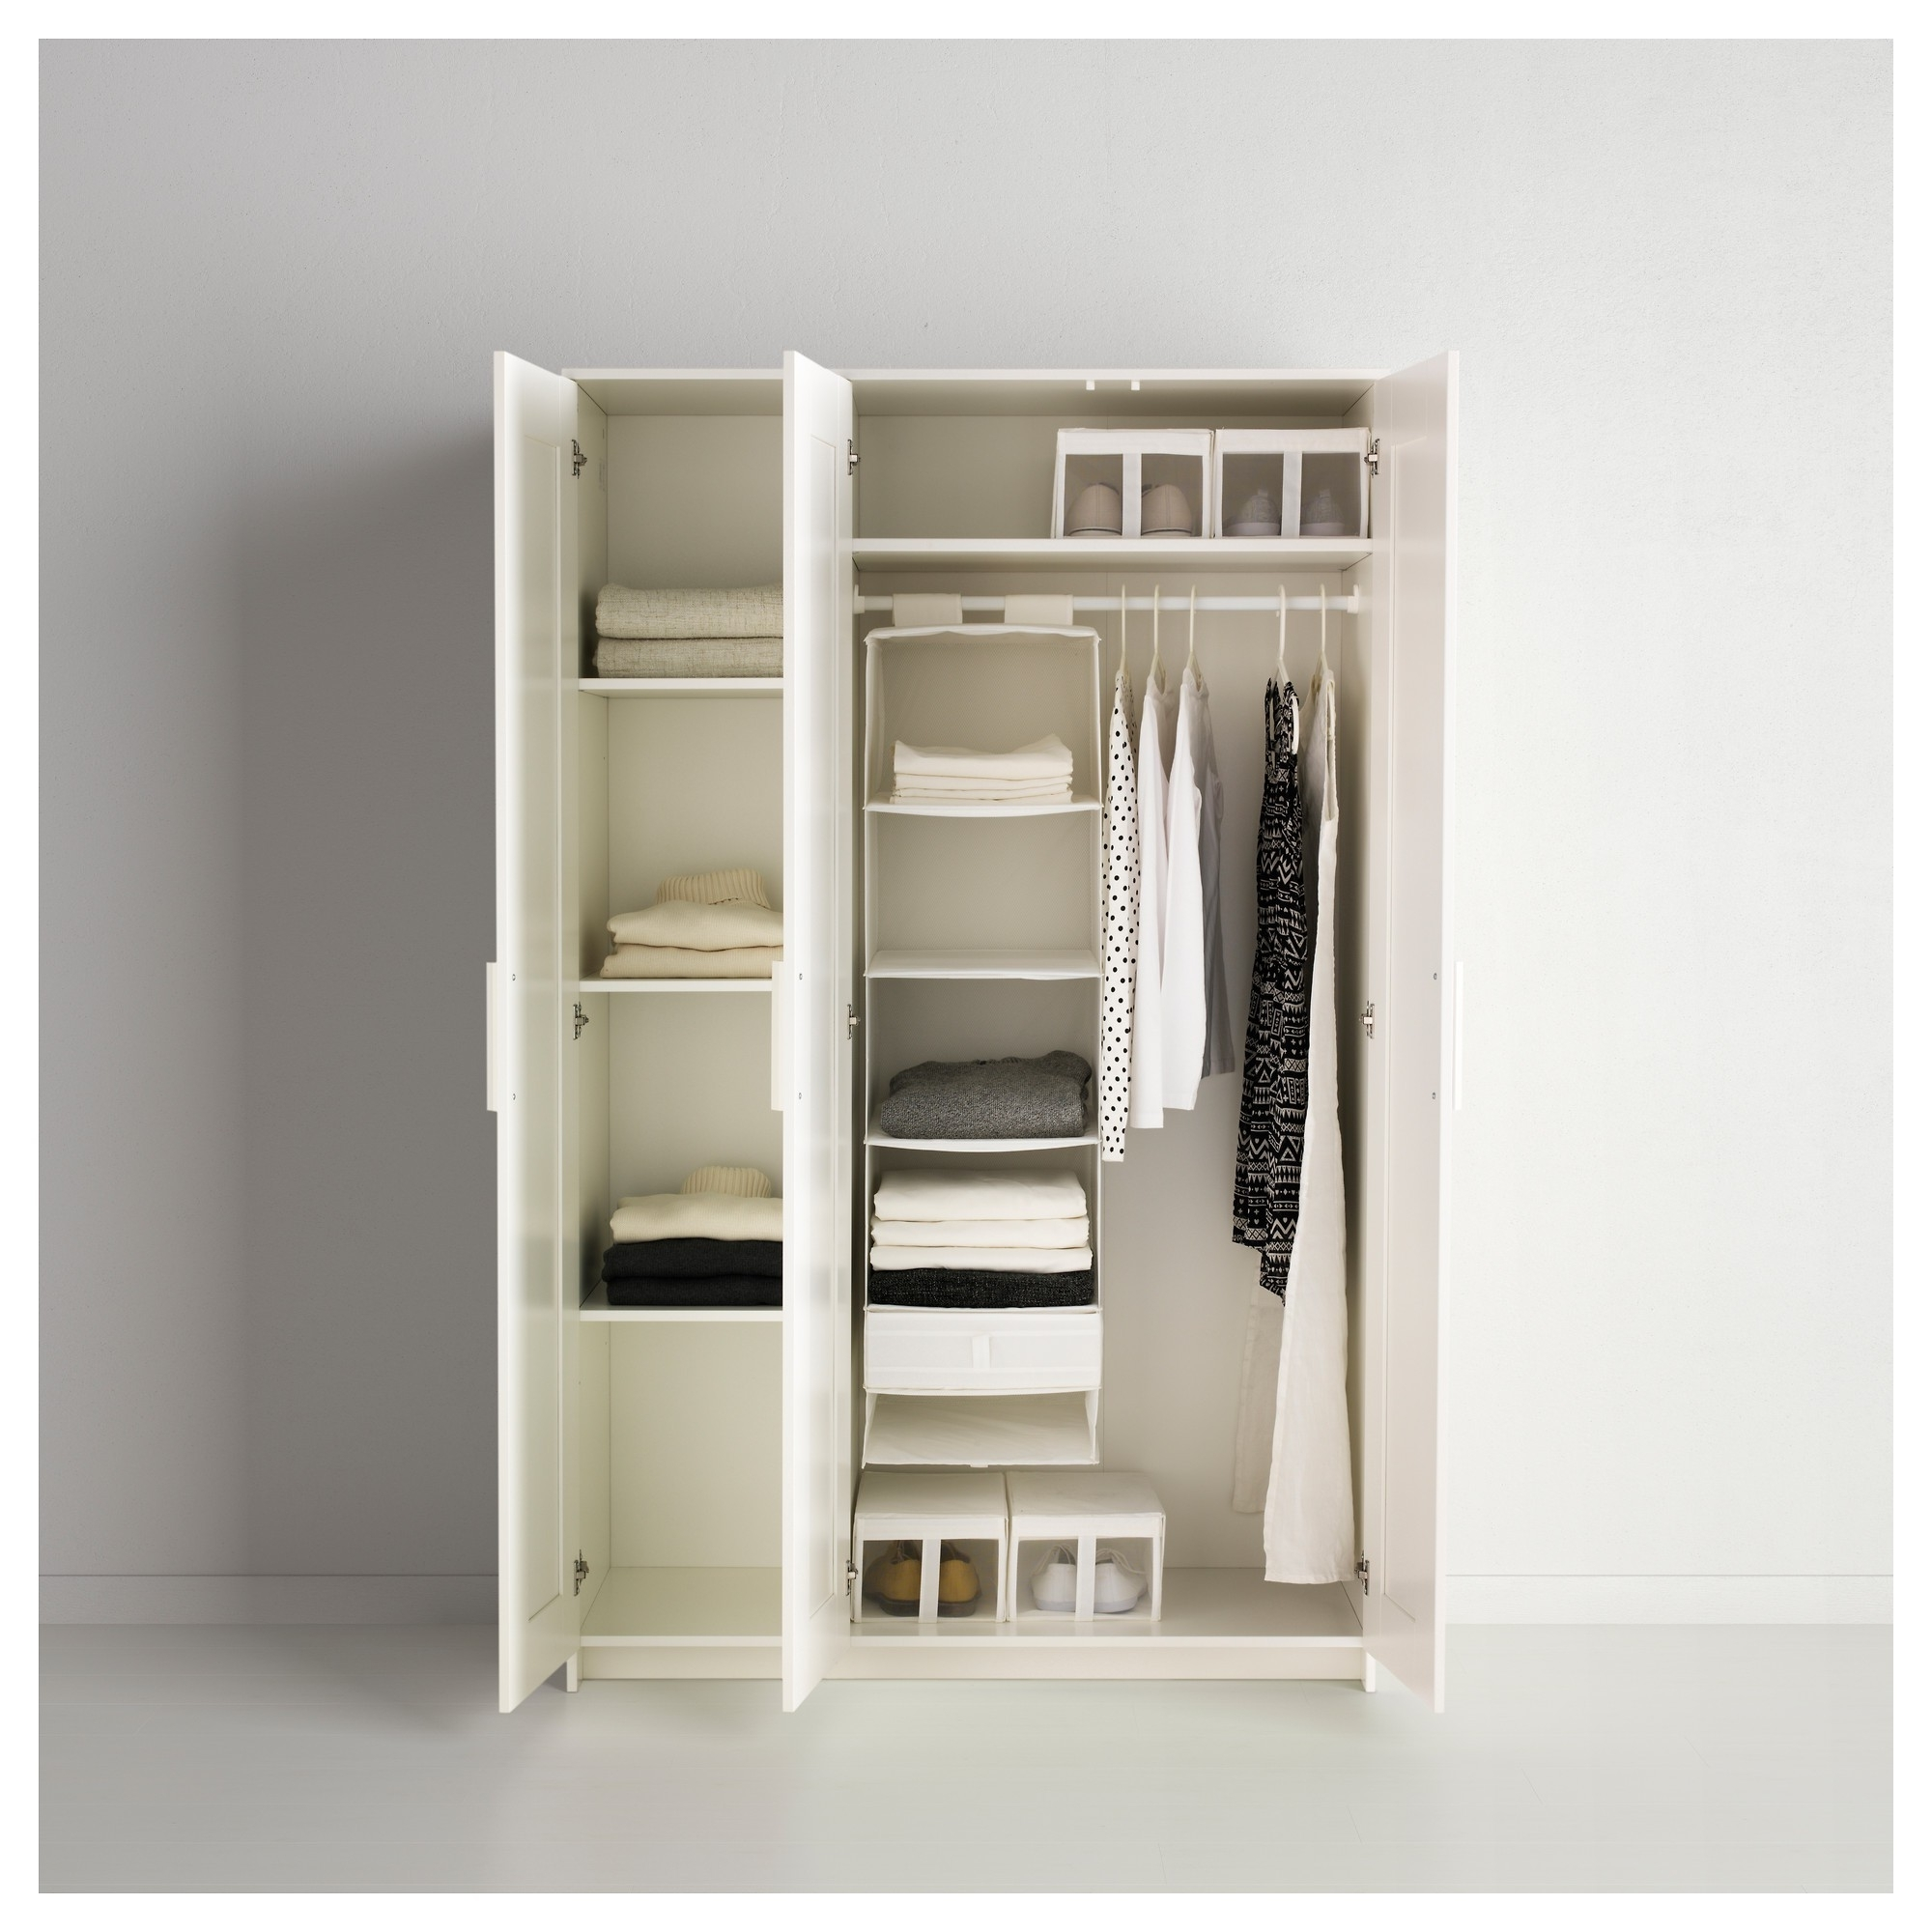 Best And Newest Wardrobes With Shelves And Drawers Throughout Interesting Ideas Wardrobe Shelves And Drawers Rectangle White (View 1 of 15)